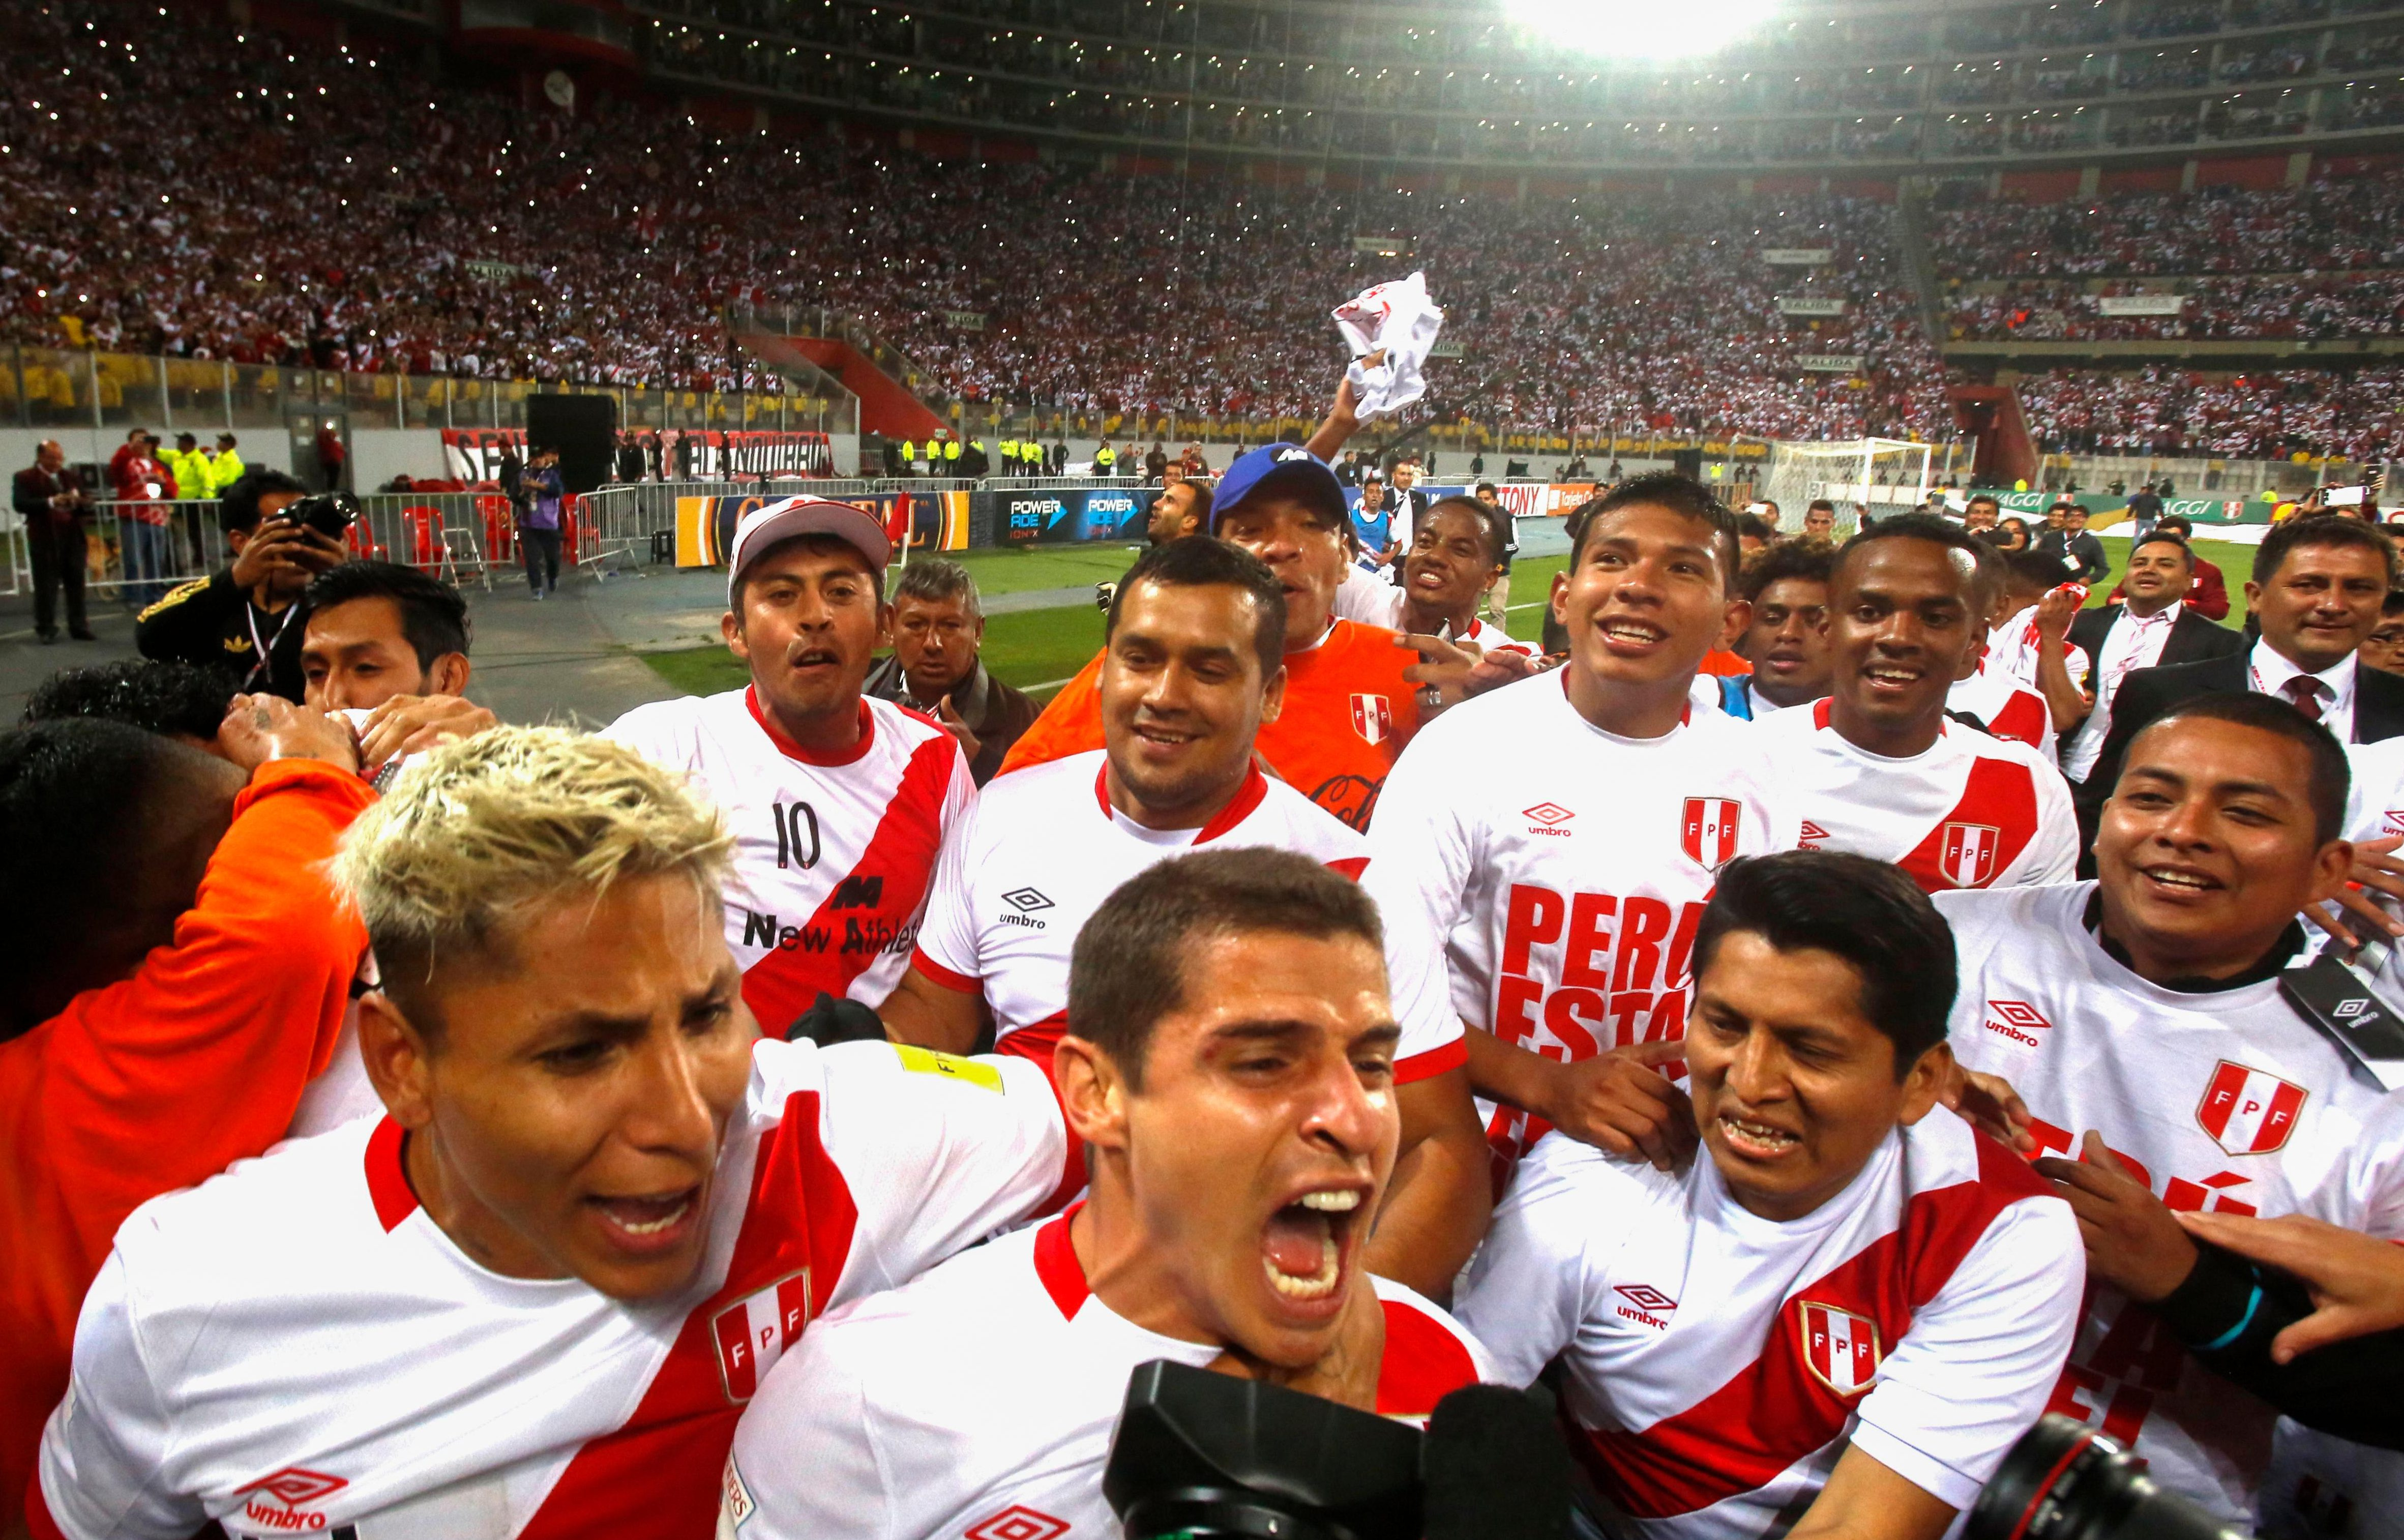 They'll be some sore heads in Peru this morning